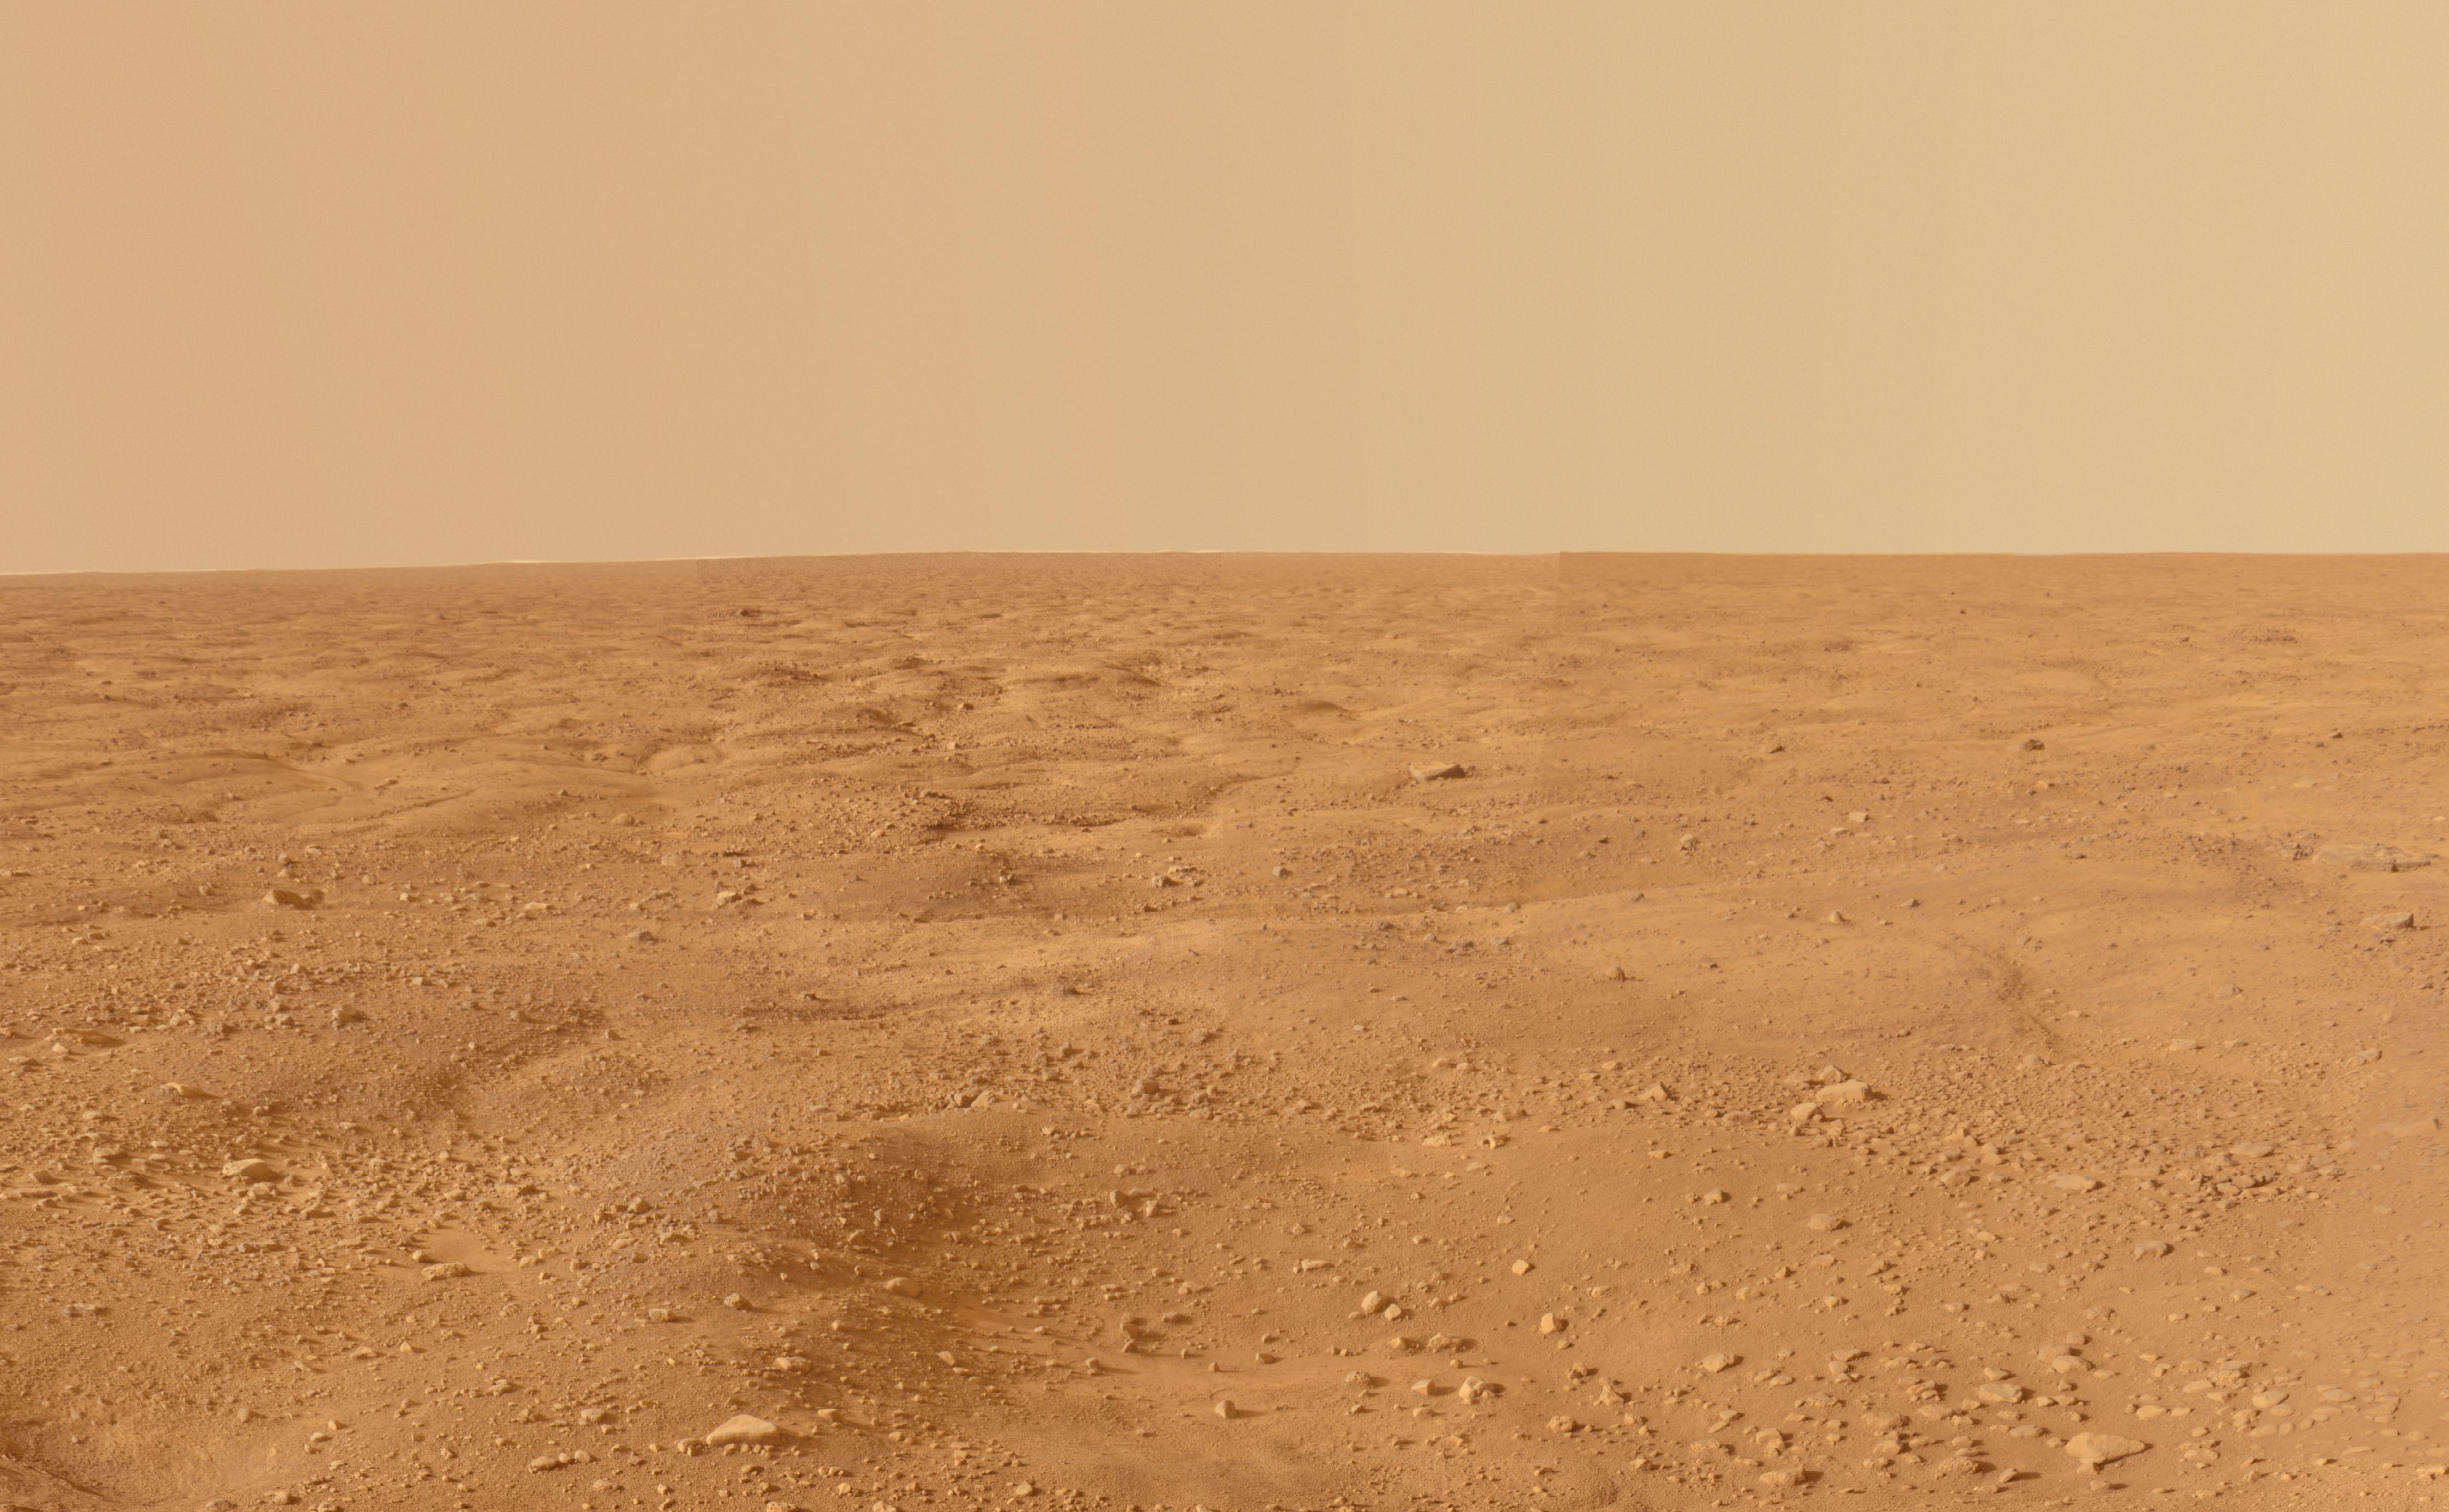 surface of mars today - photo #4